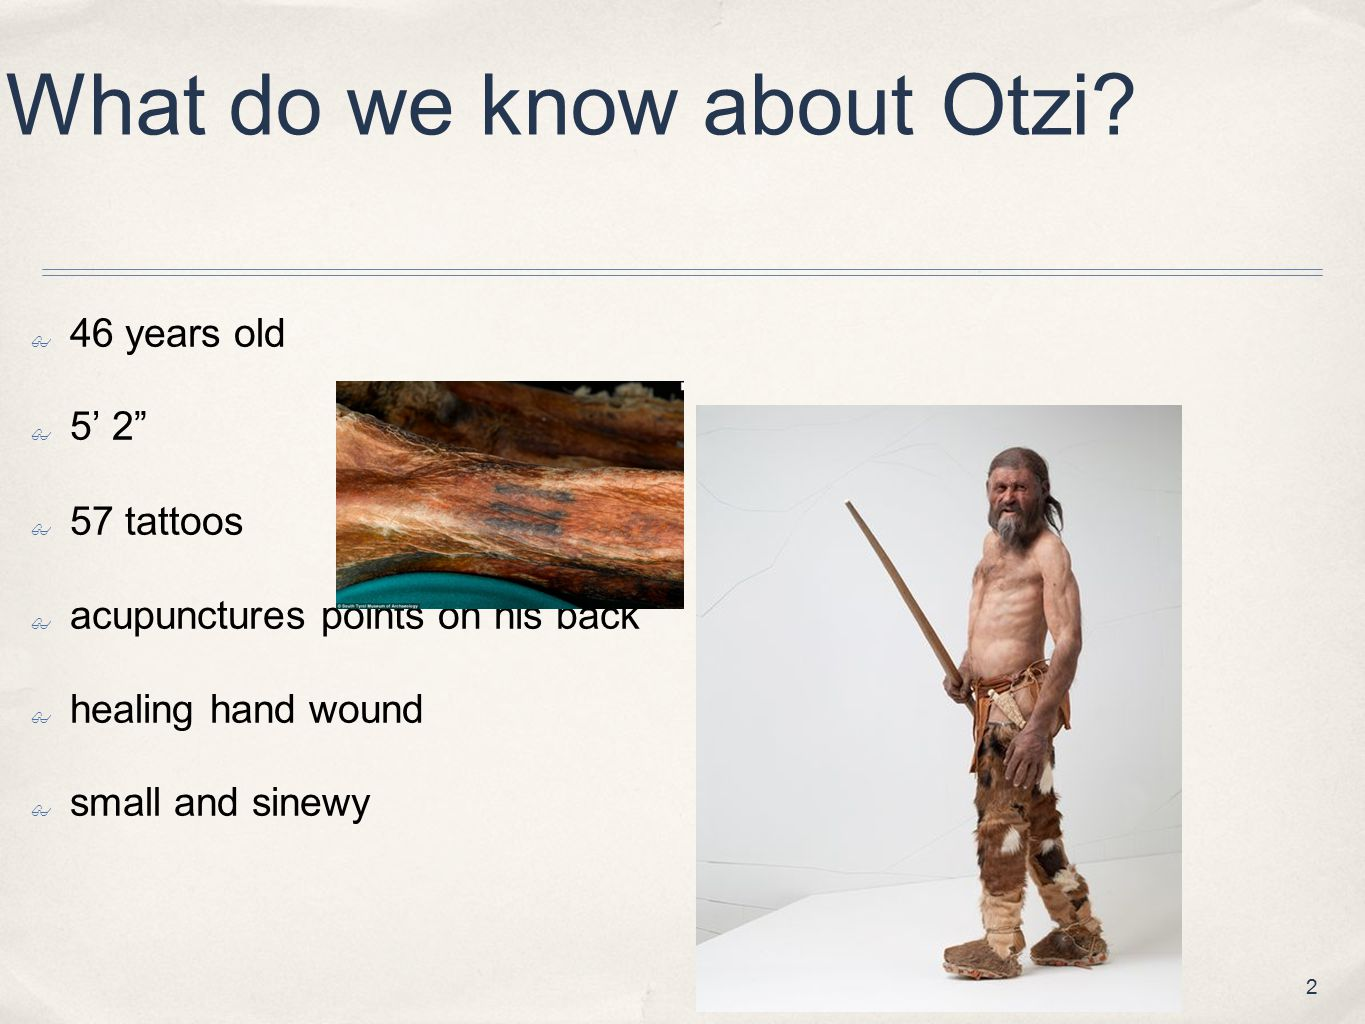 What do we know about Otzi